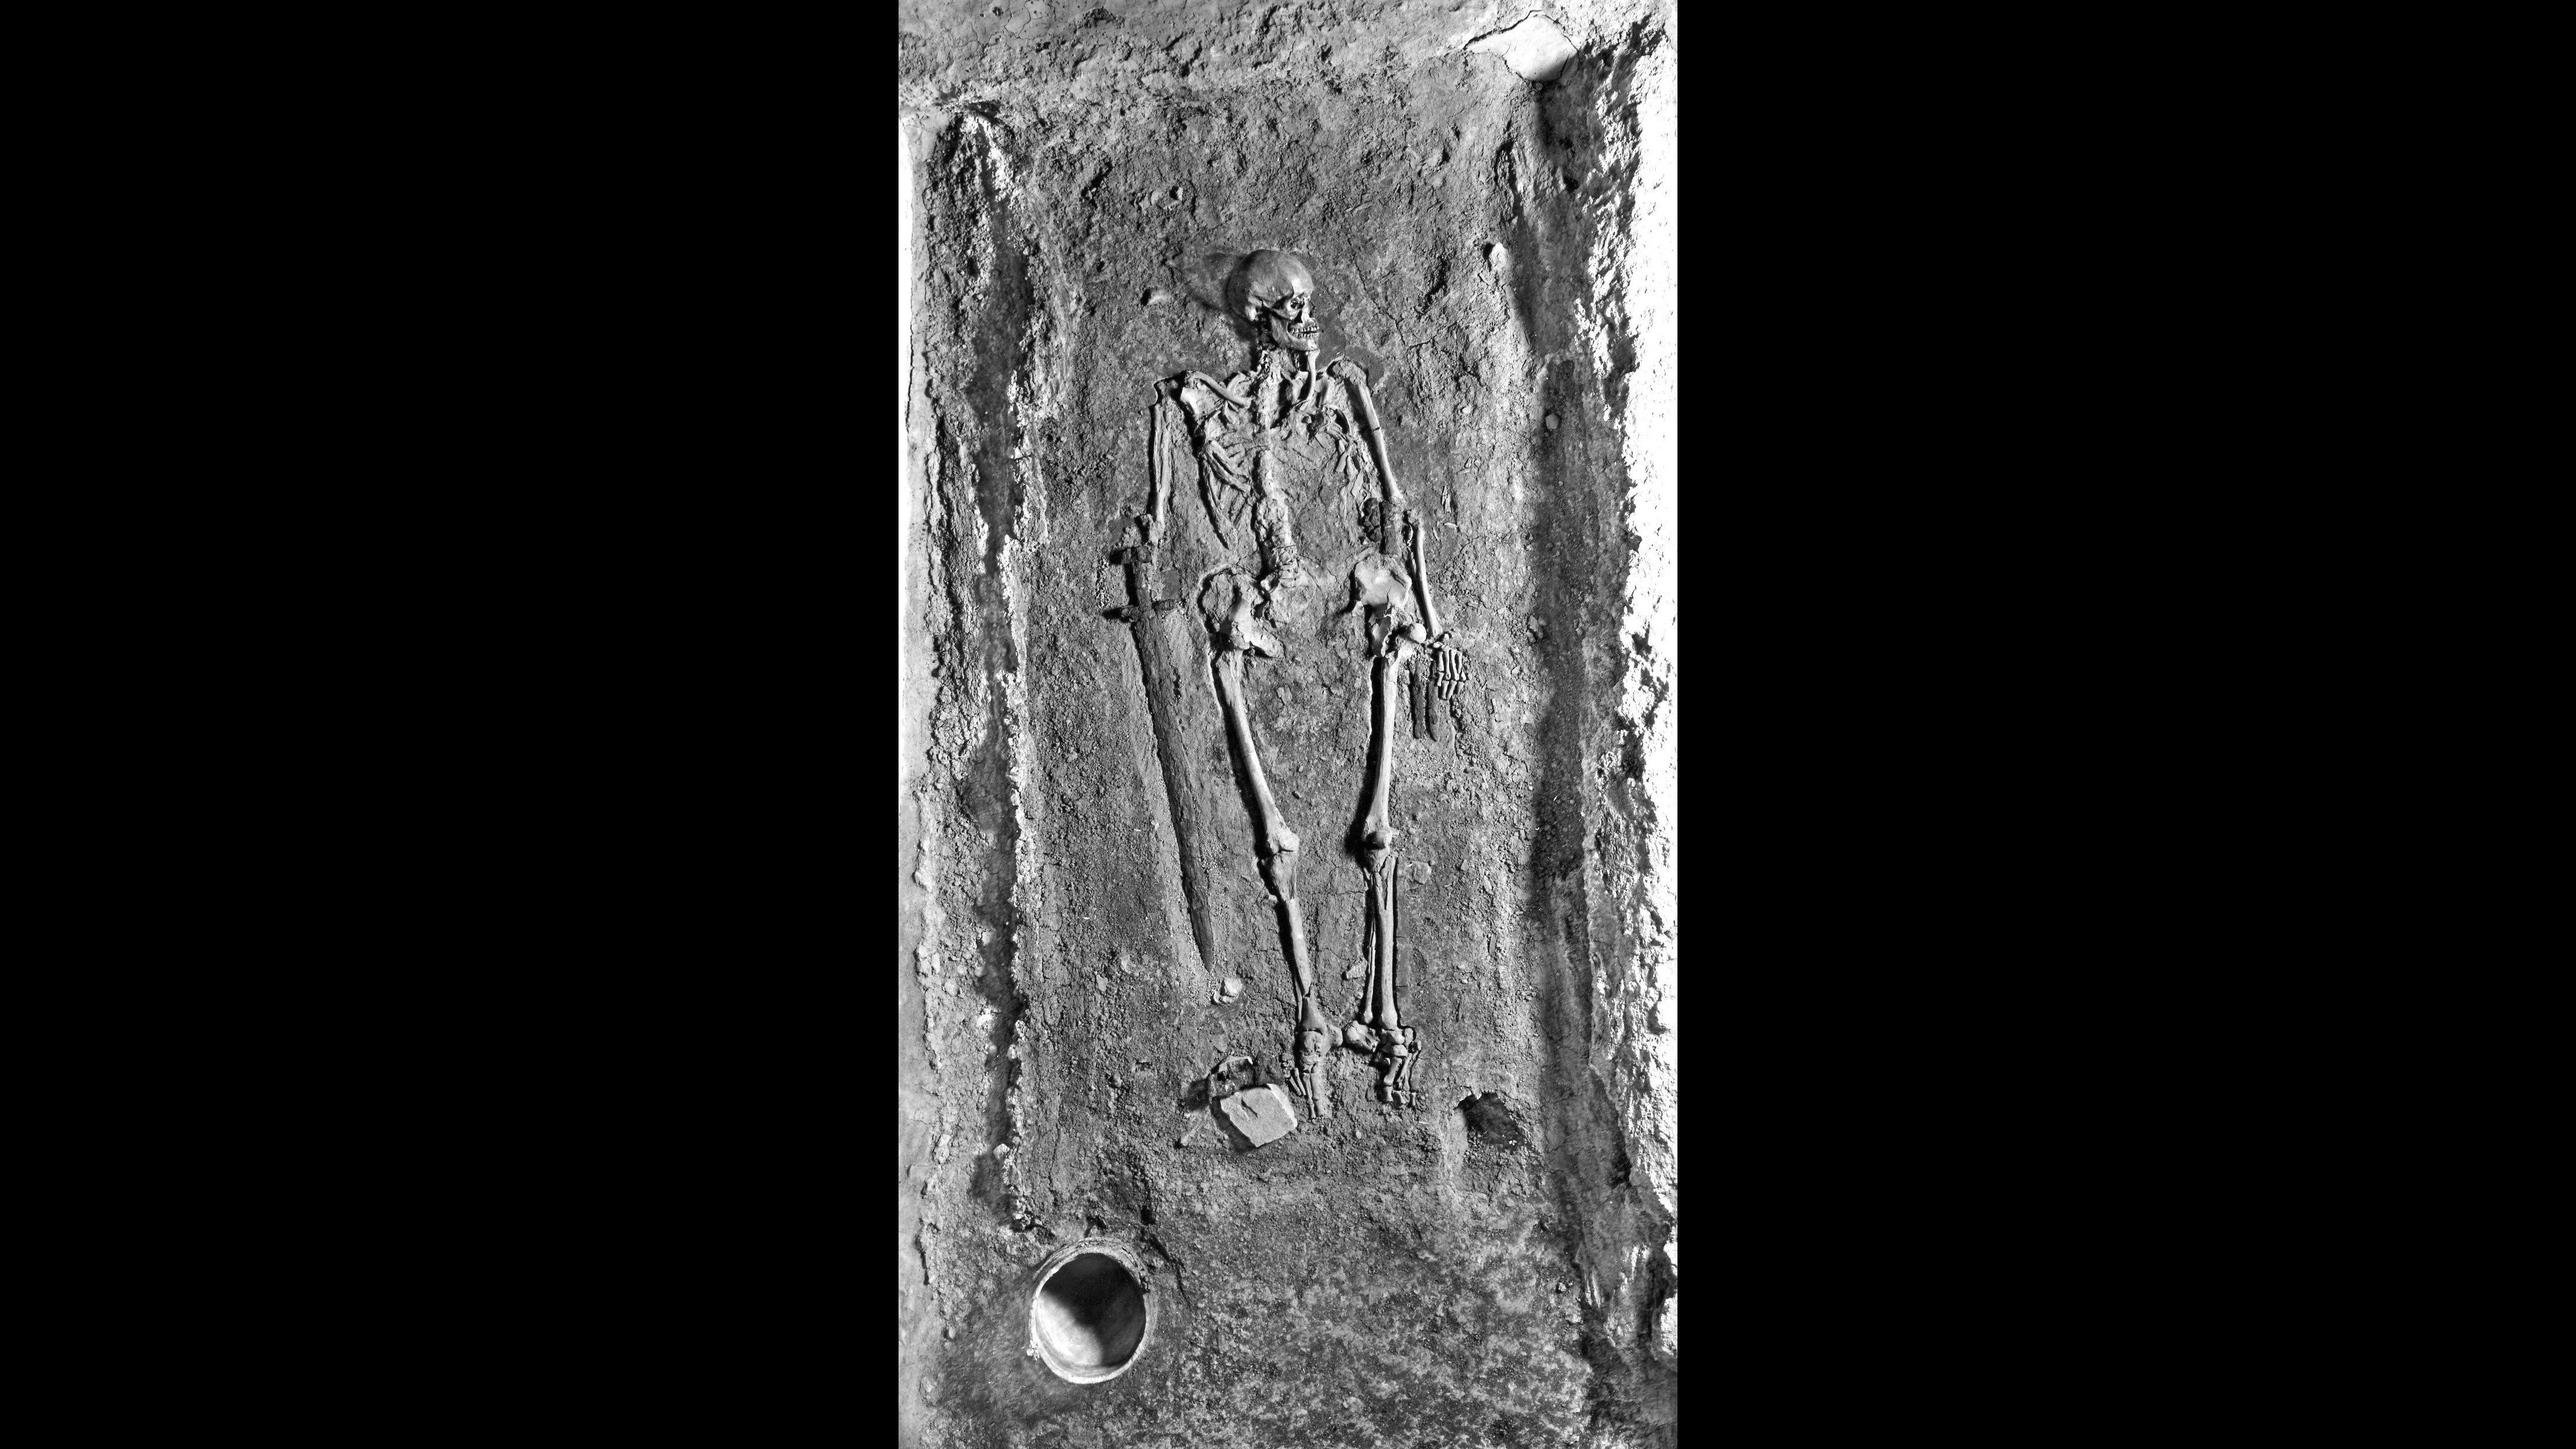 Scientists try to crack the mysterious case of a medieval skeleton once used as Nazi propaganda